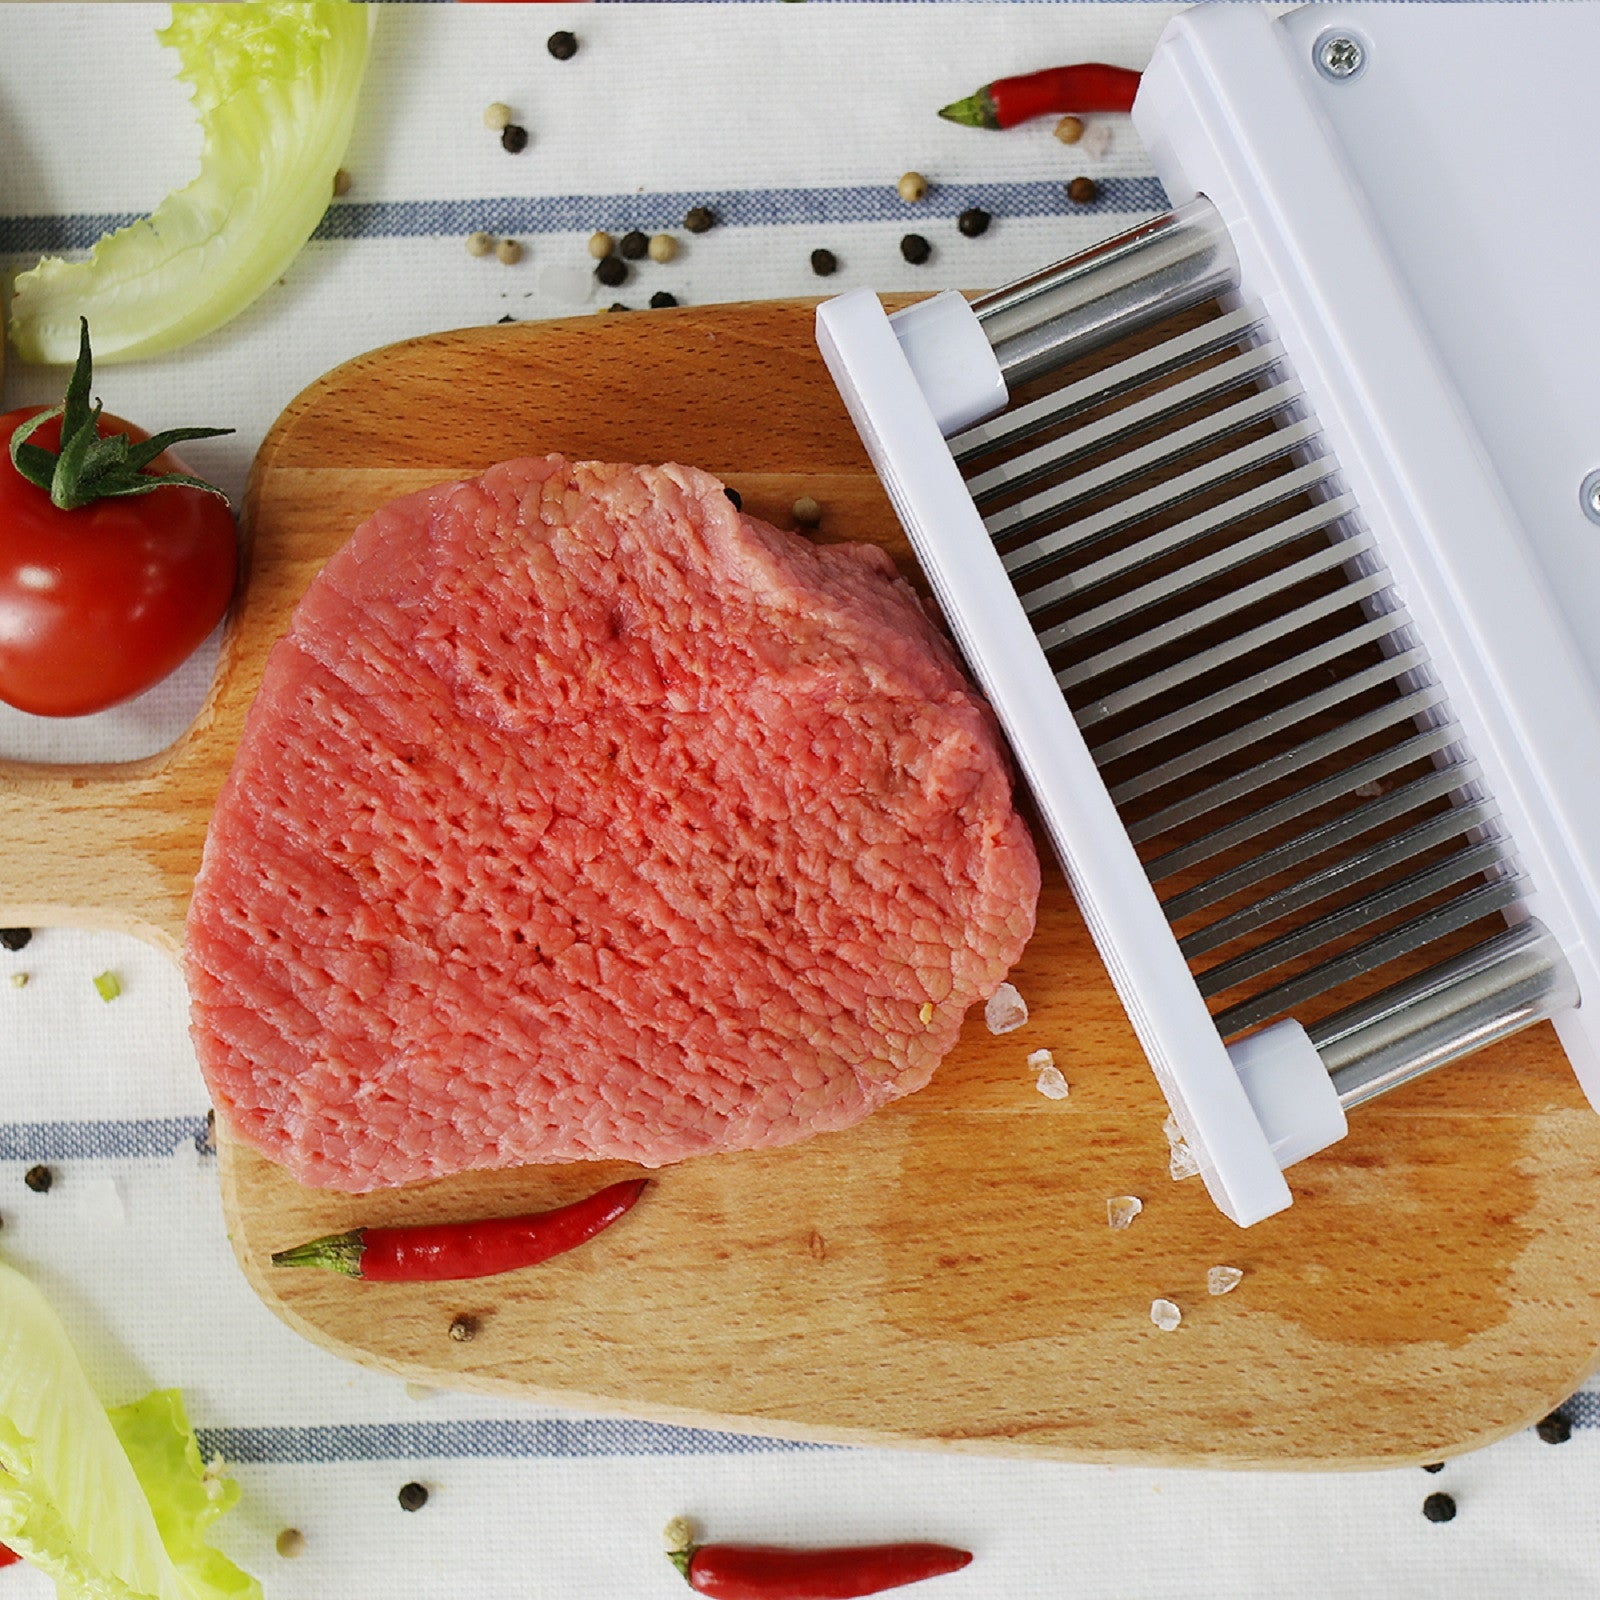 Meat Tenderizer 48 Blades Stainless Steel Hand Press for Steak, Chicken, Pork